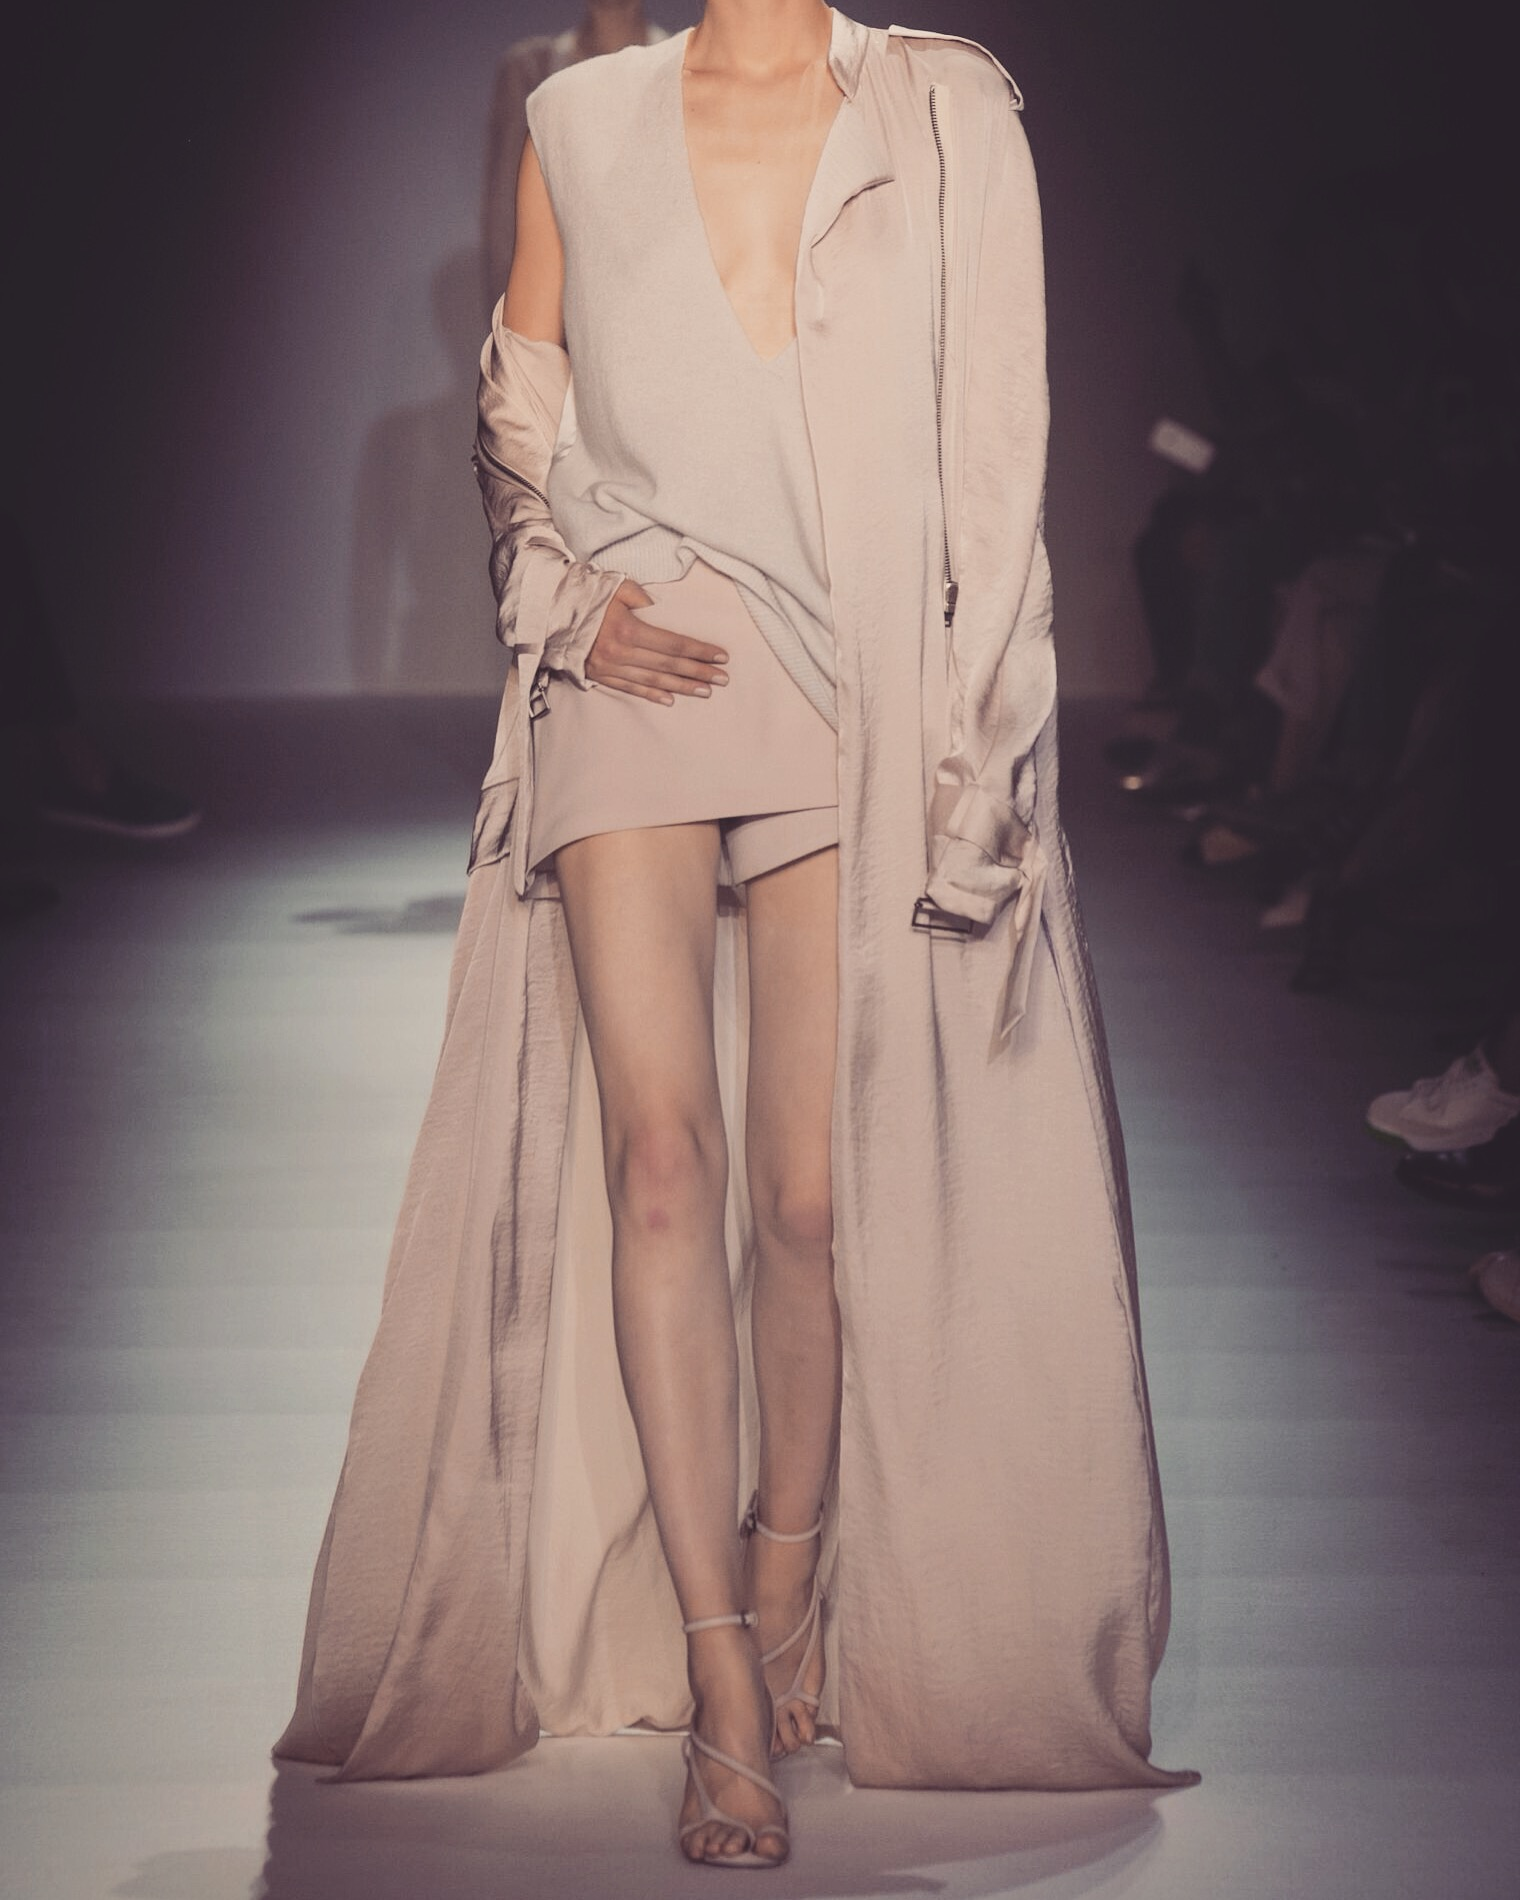 Haider Ackermann Fashion Show Ready To Wear Collection nude outfit neutrals